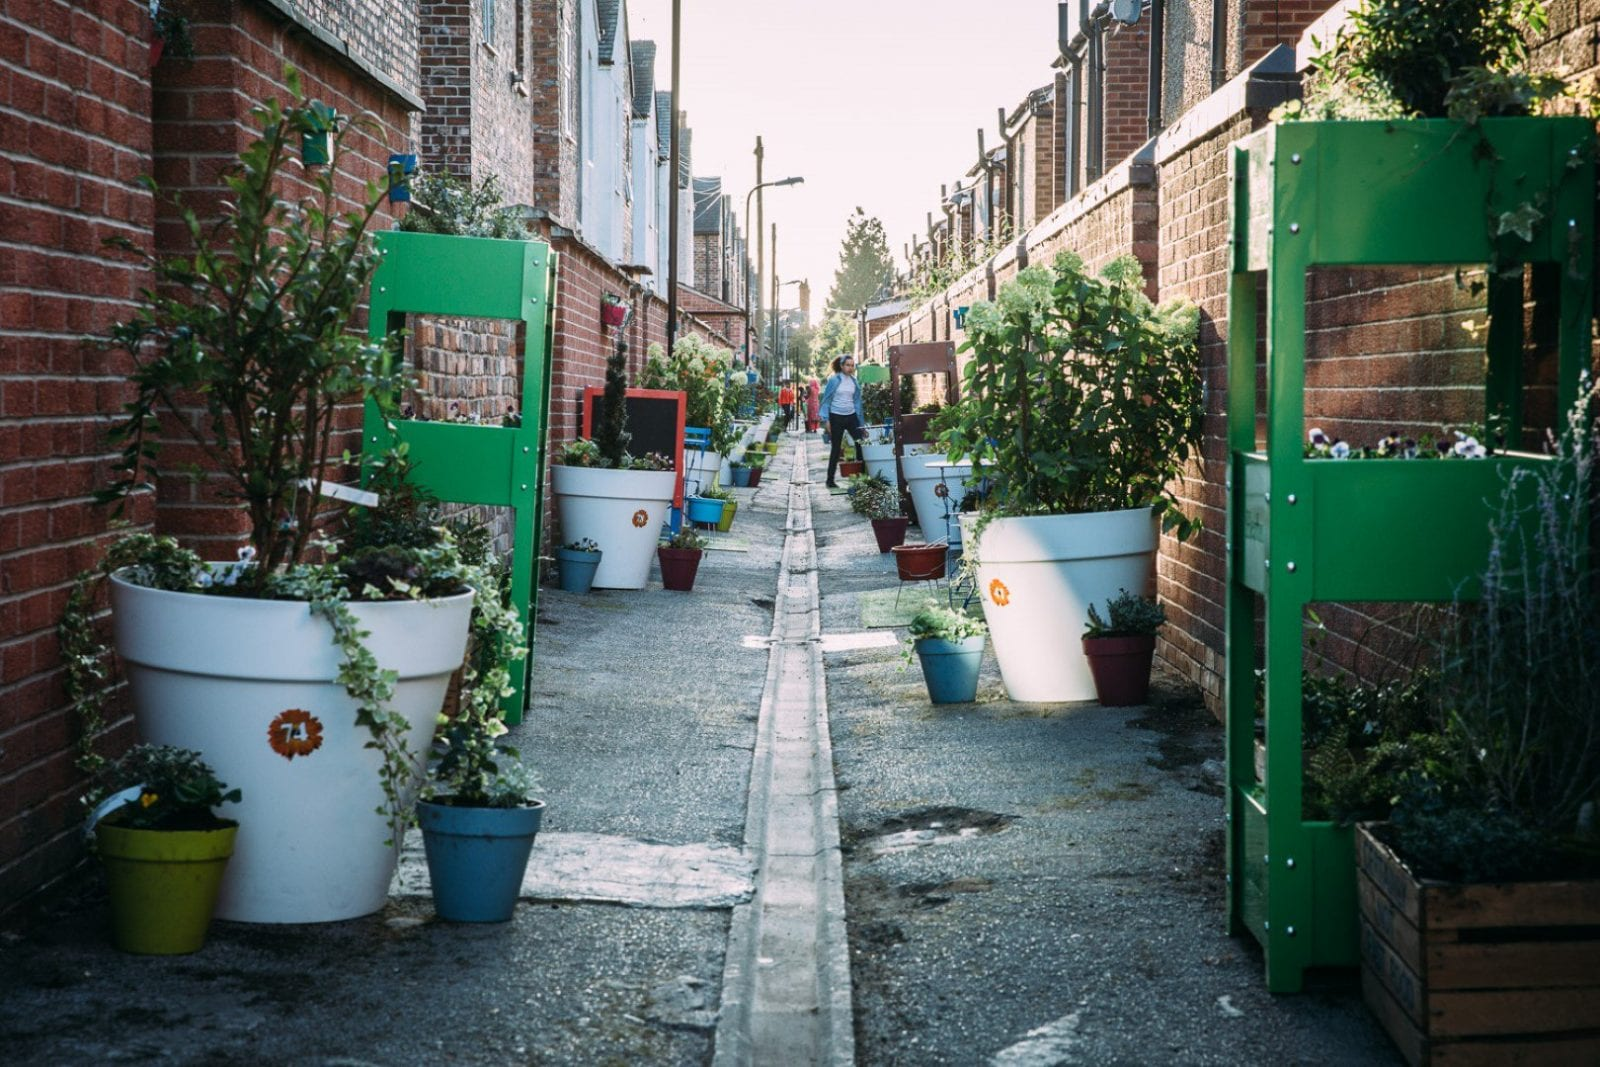 We Love MCR Charity funds new competition to transform unused areas into community green spaces, The Manc